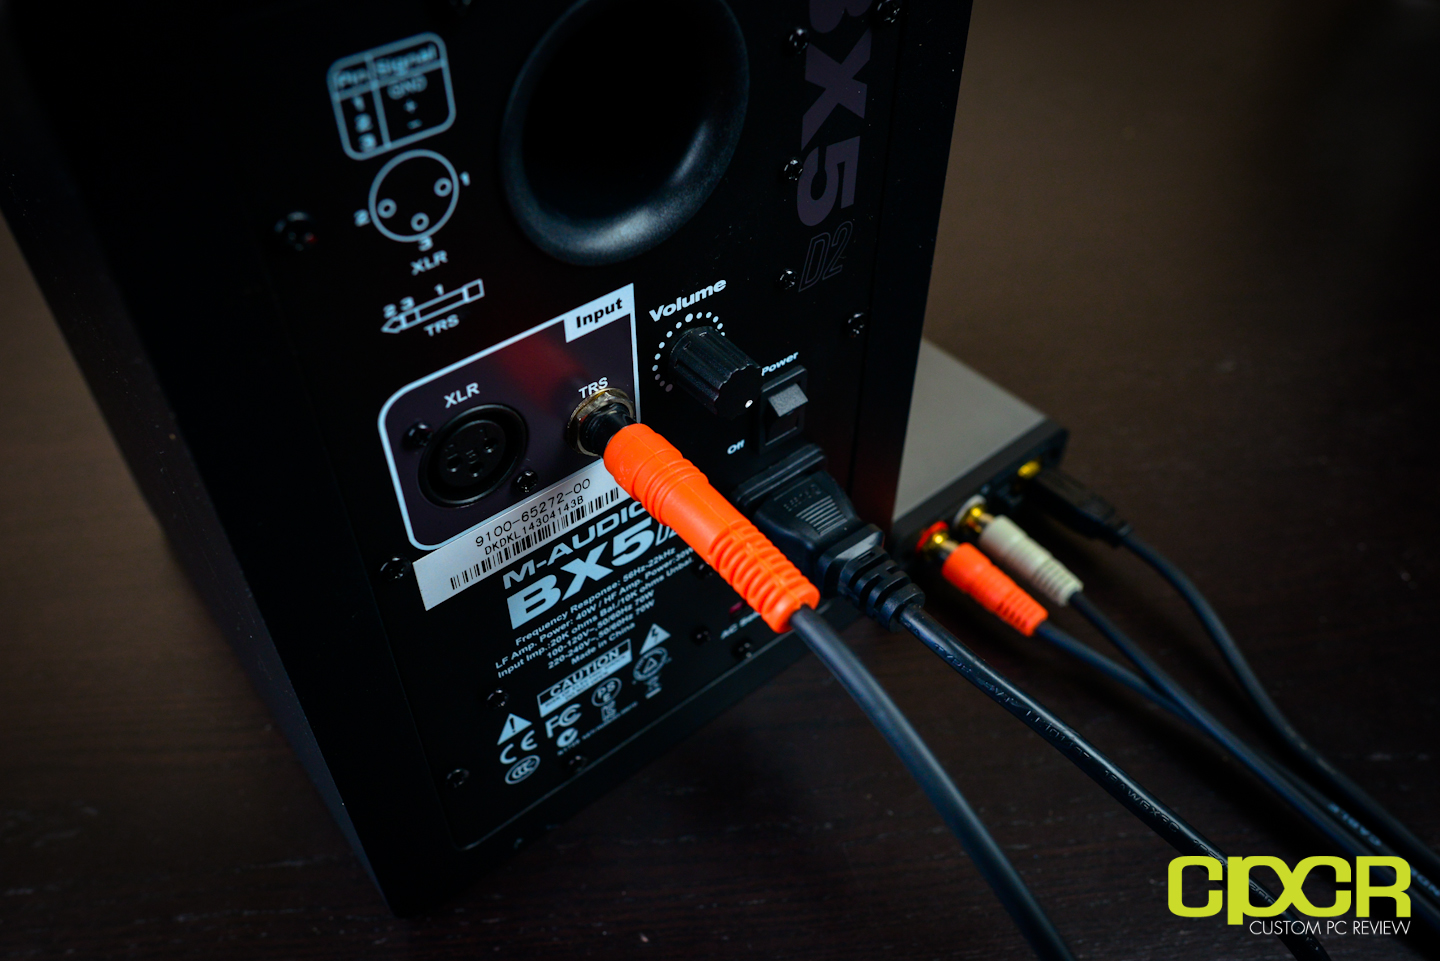 M-Audio BX5 D2 Studio Monitor Review | Custom PC Review on